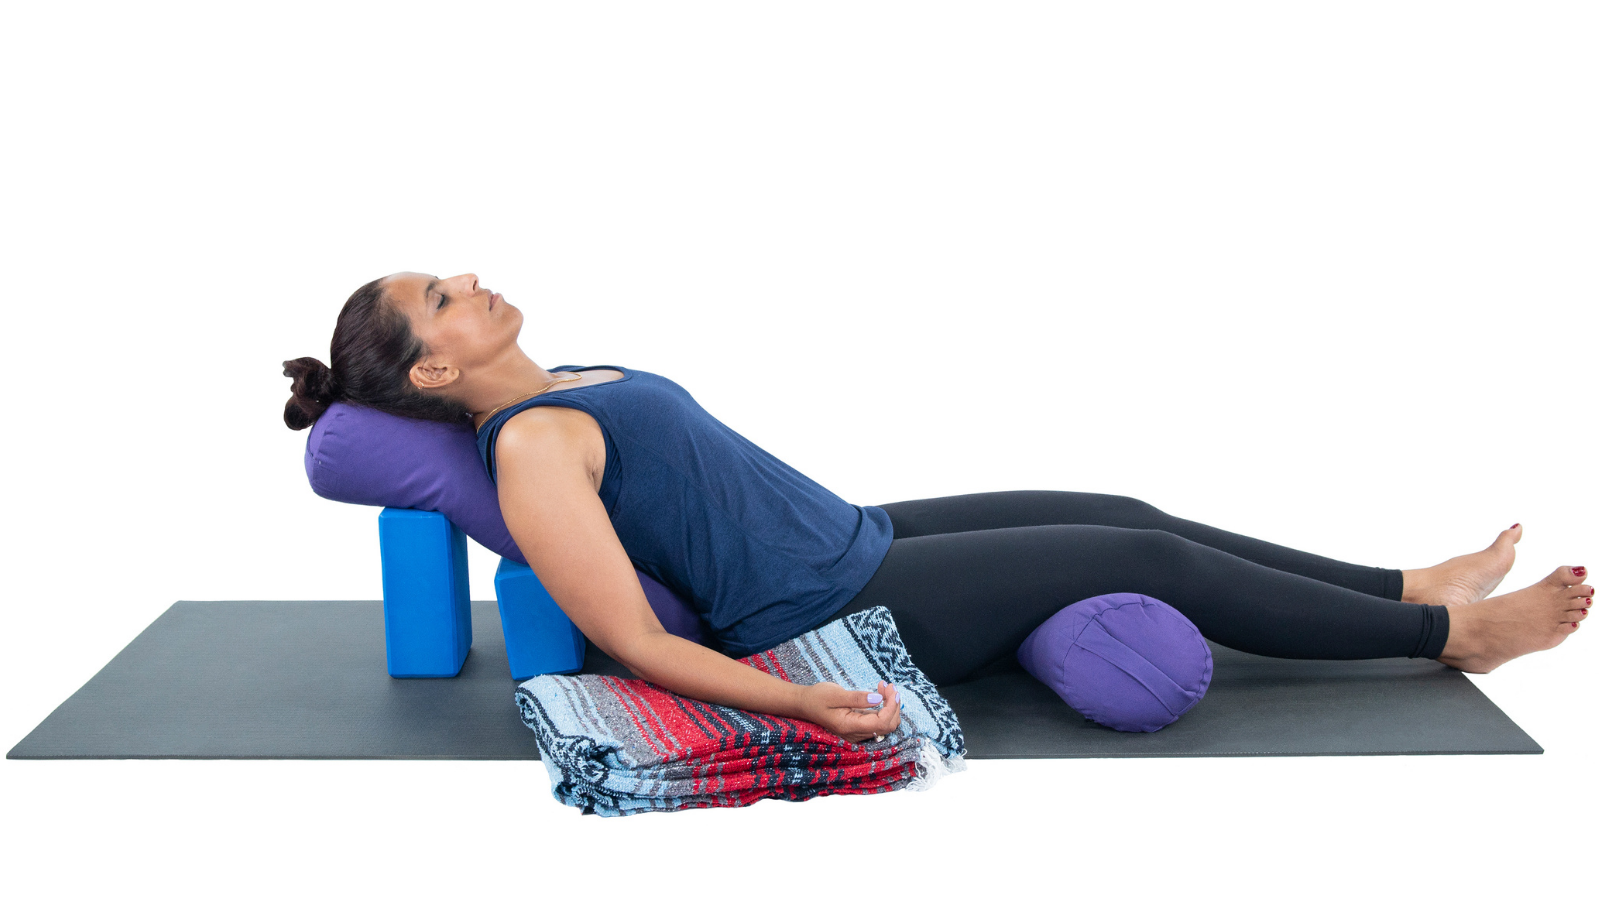 How to practice Corpse Pose or Savasana with many props for comfort and a trauma-informed practice